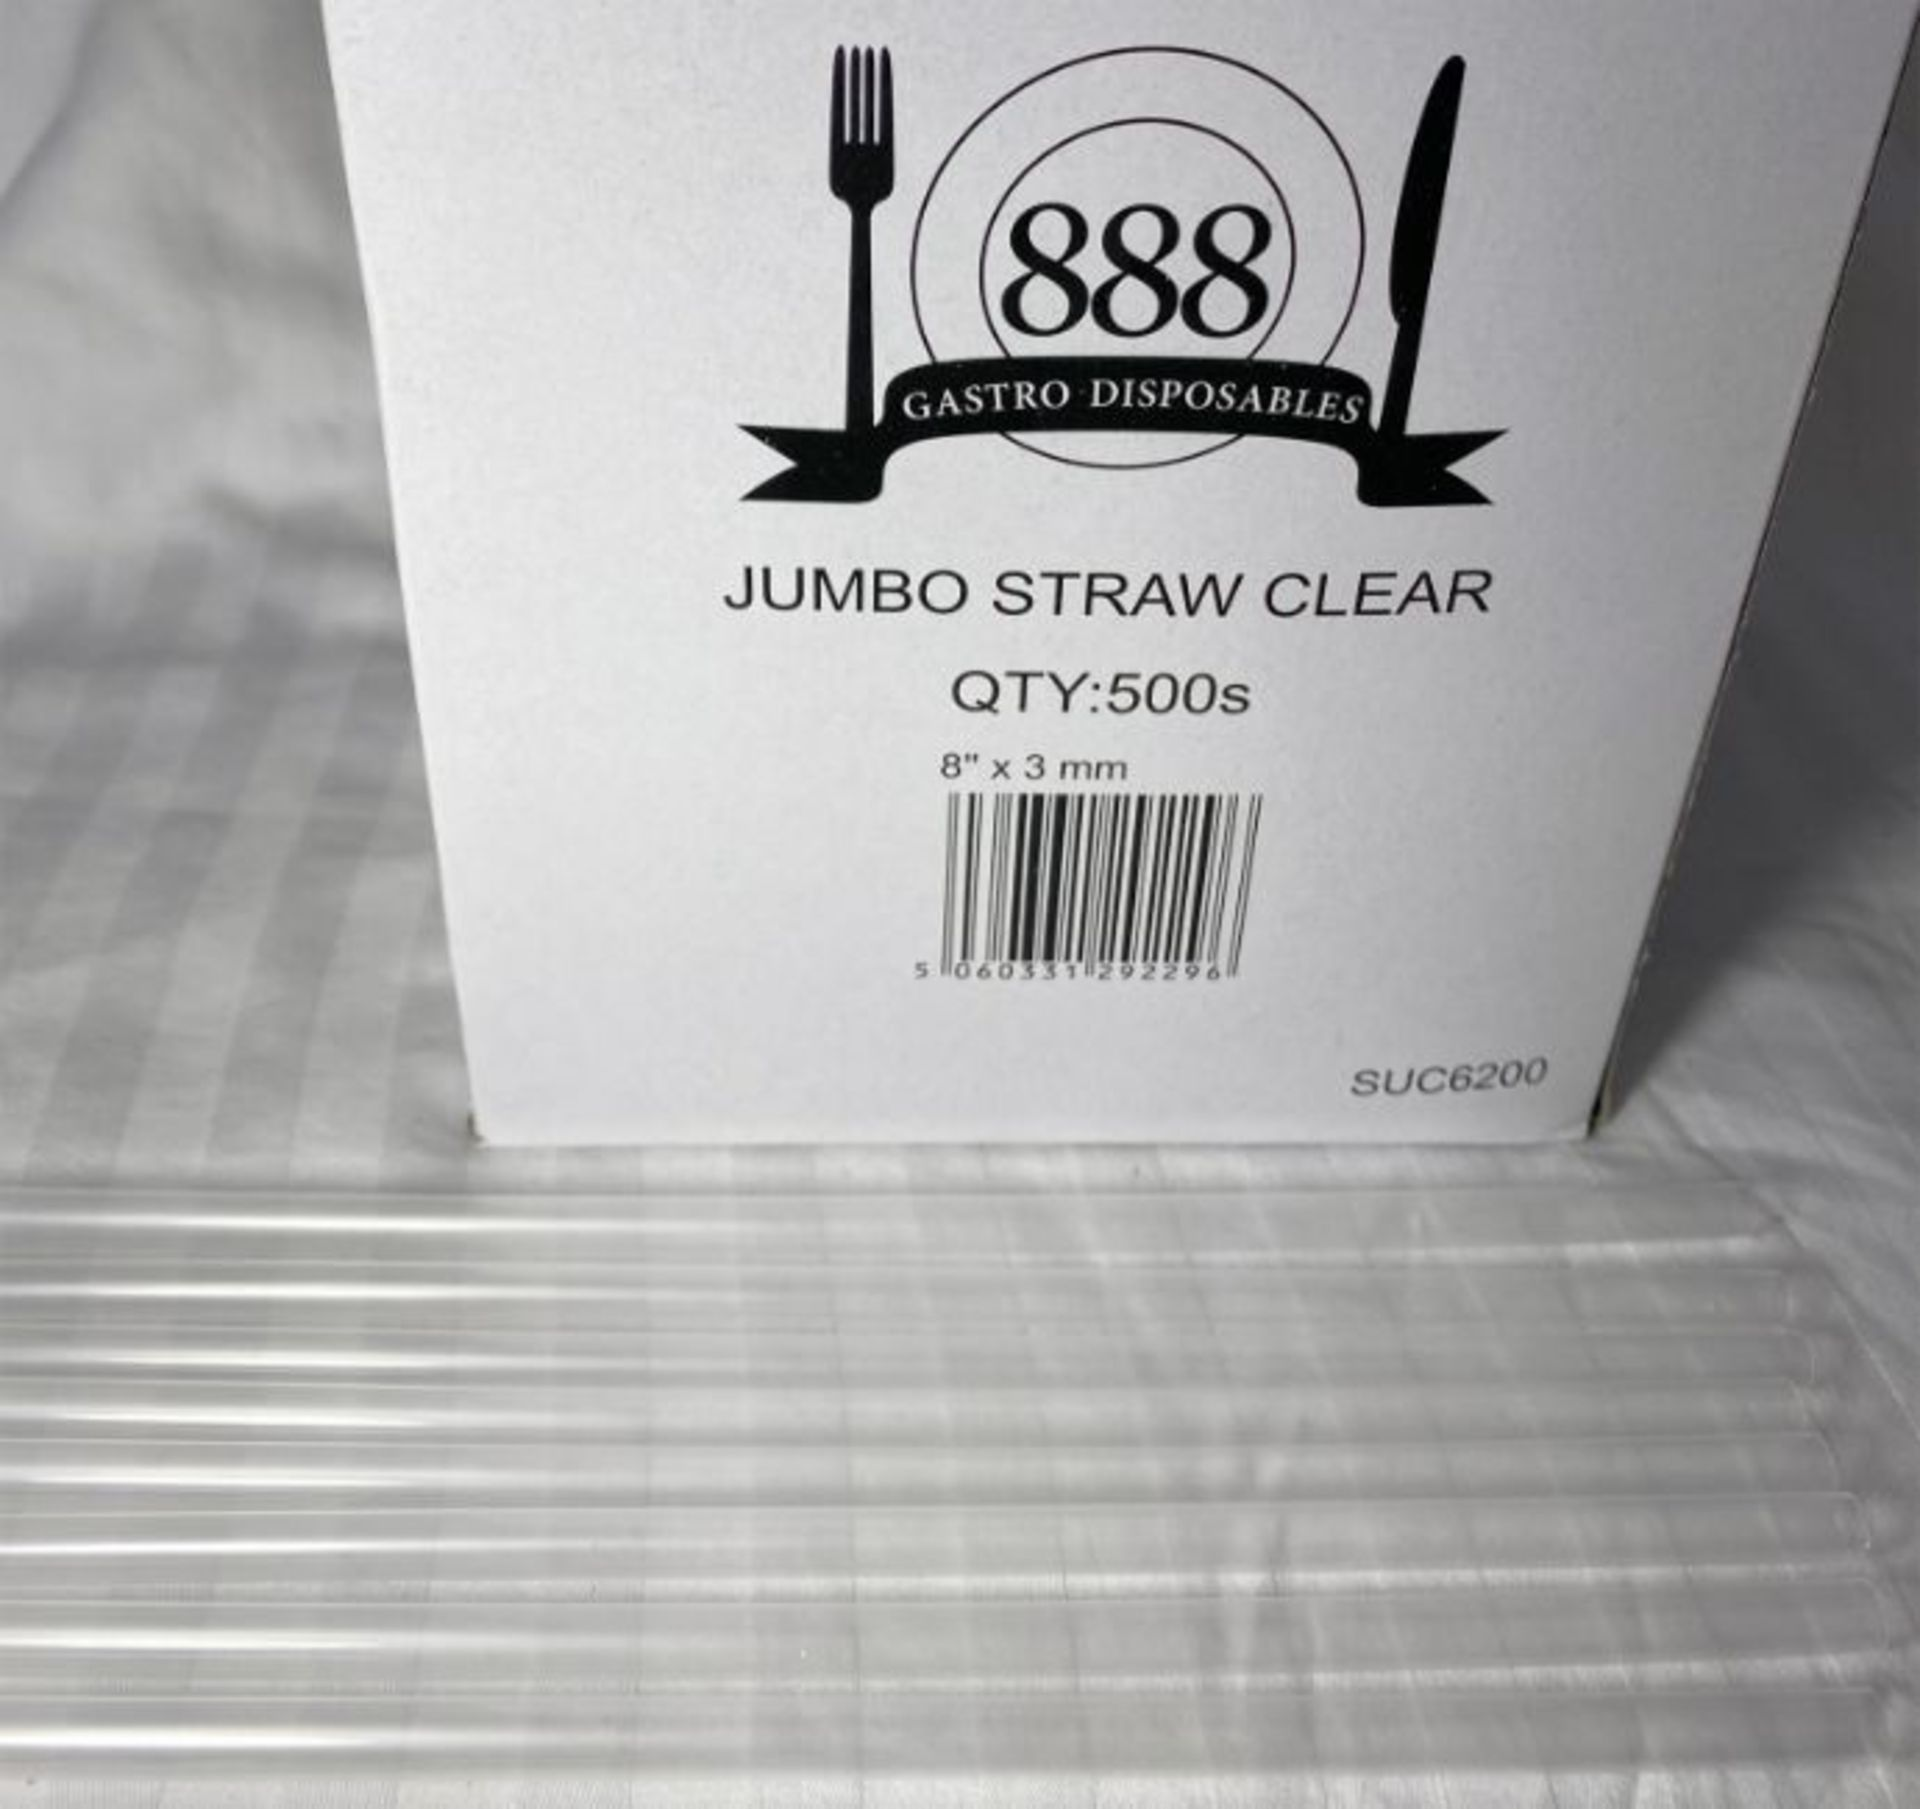 22 x Pallets of Disposable Catering Items | See description for more details - Image 14 of 18